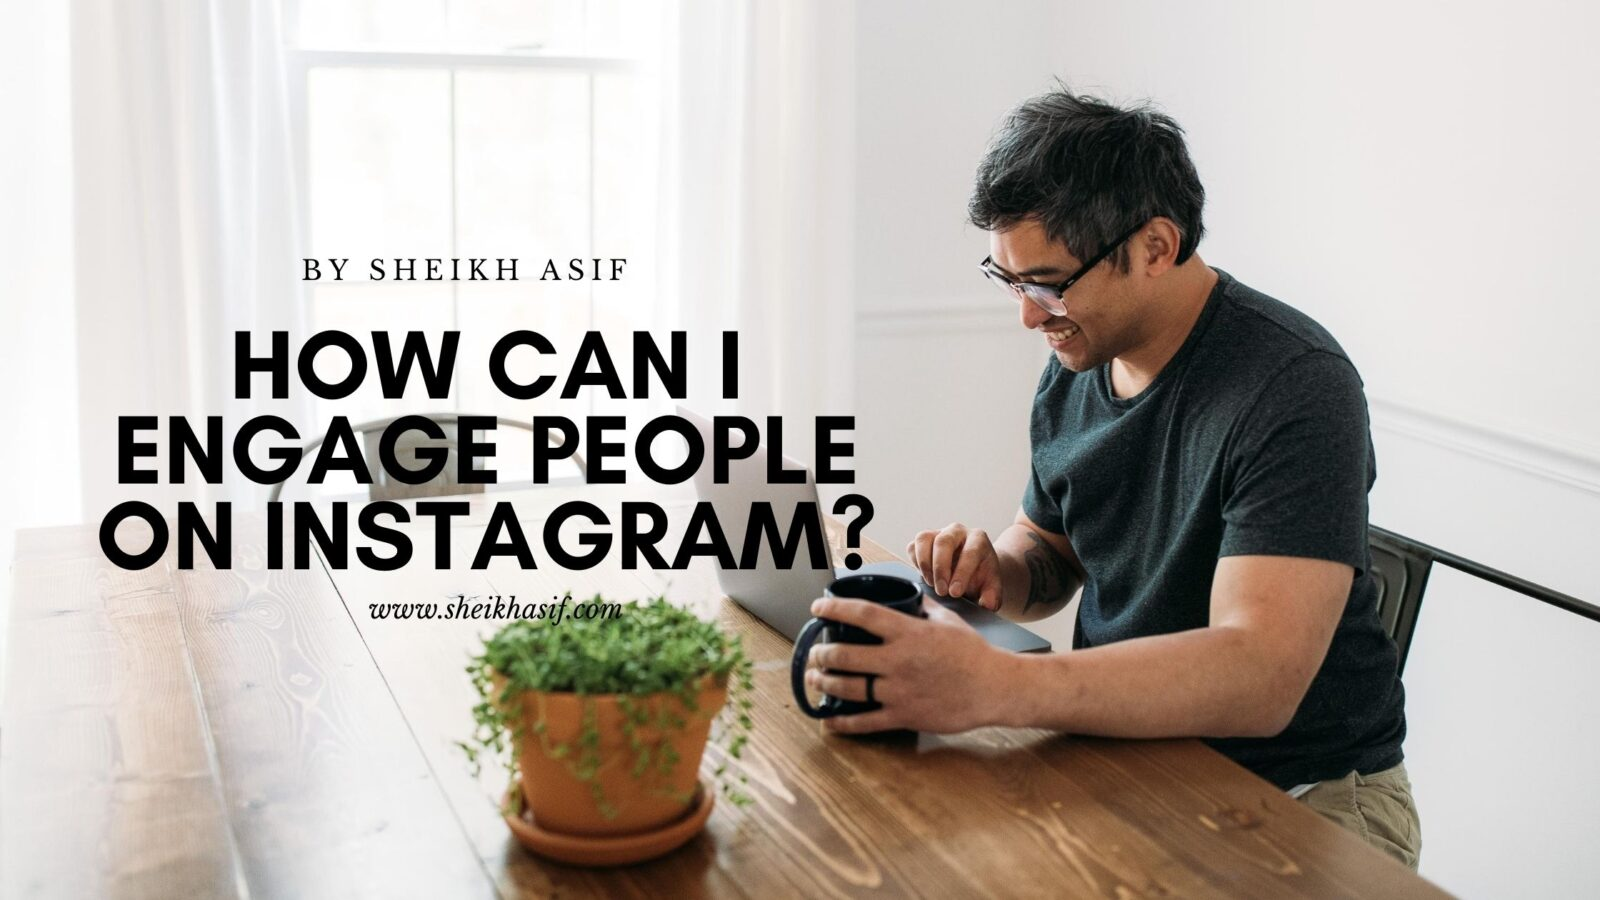 How can I engage people on Instagram?